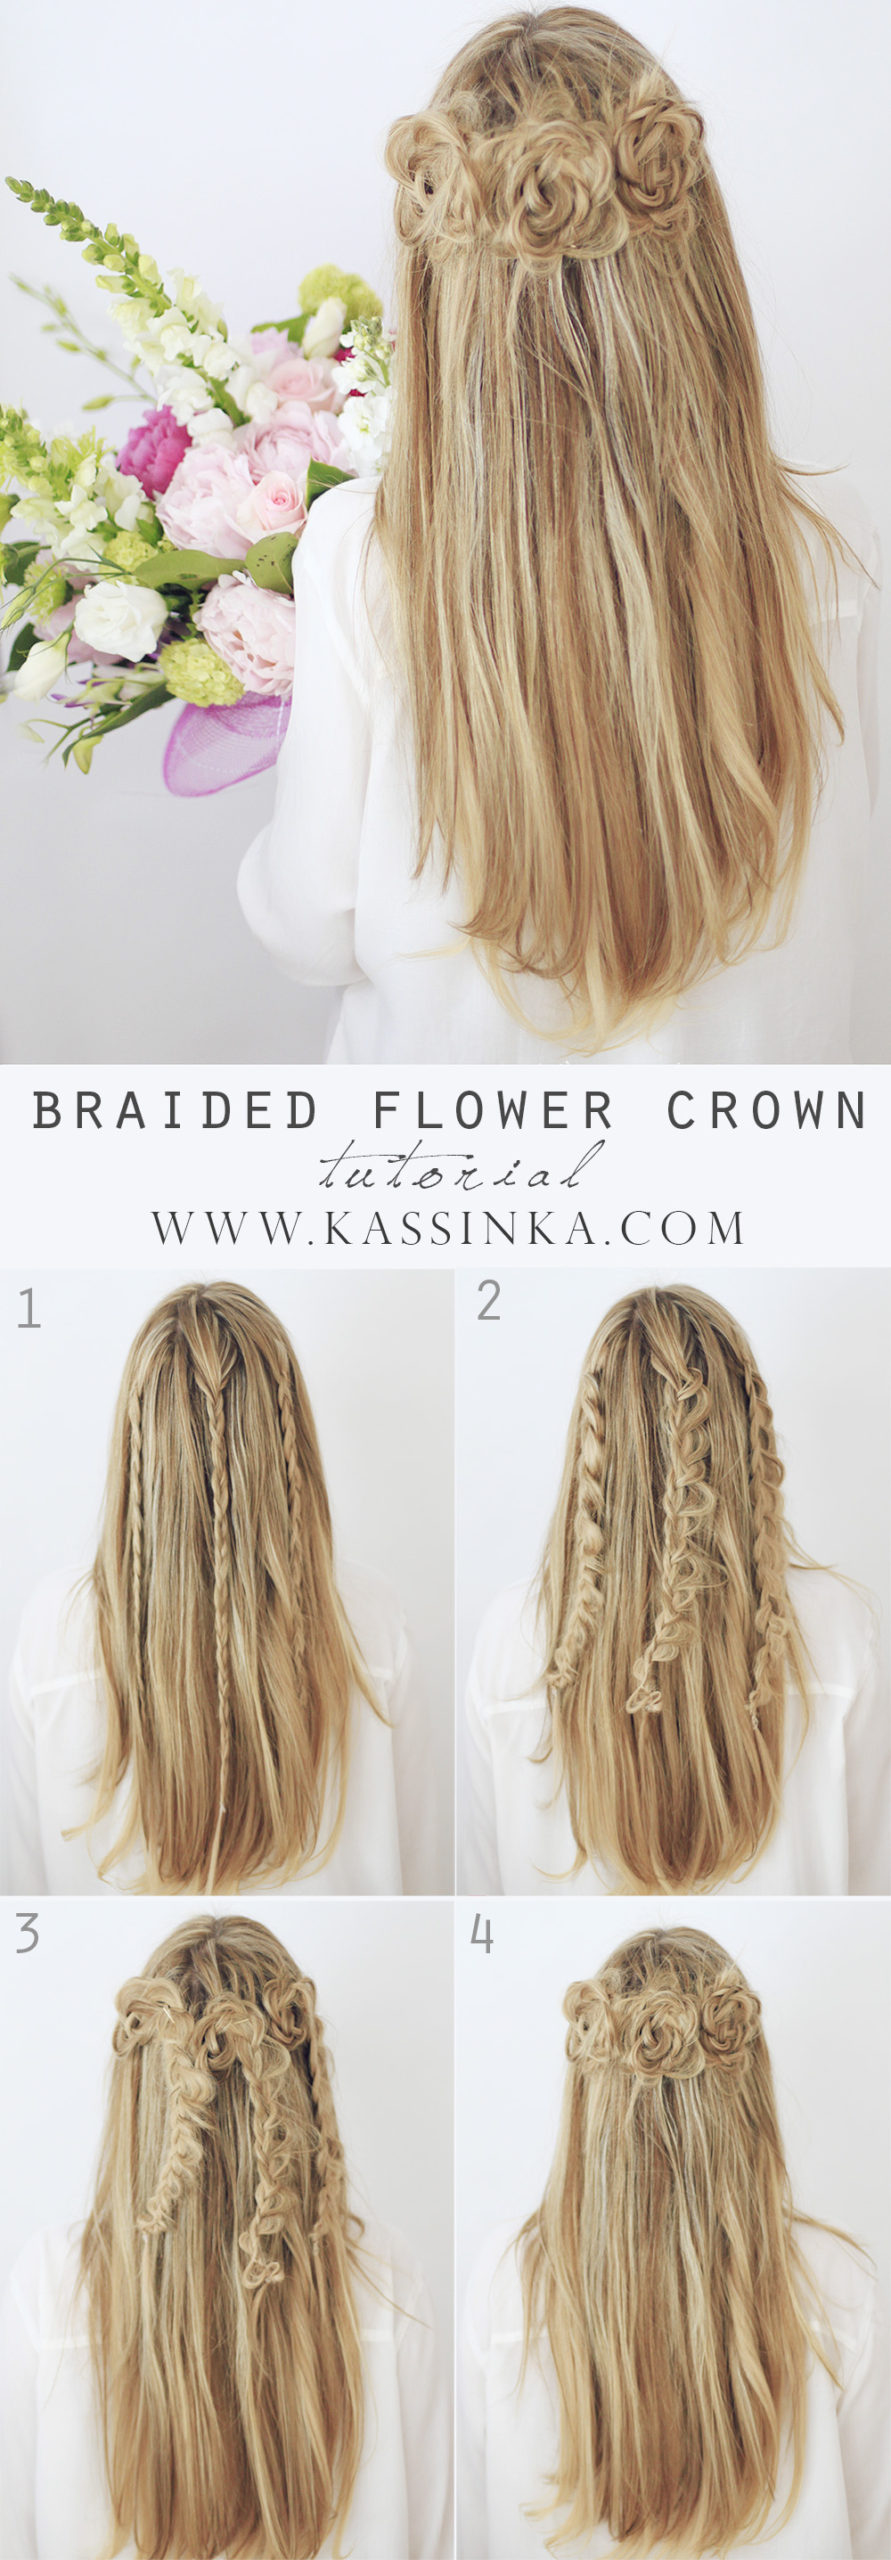 braided flower crown hairstyle